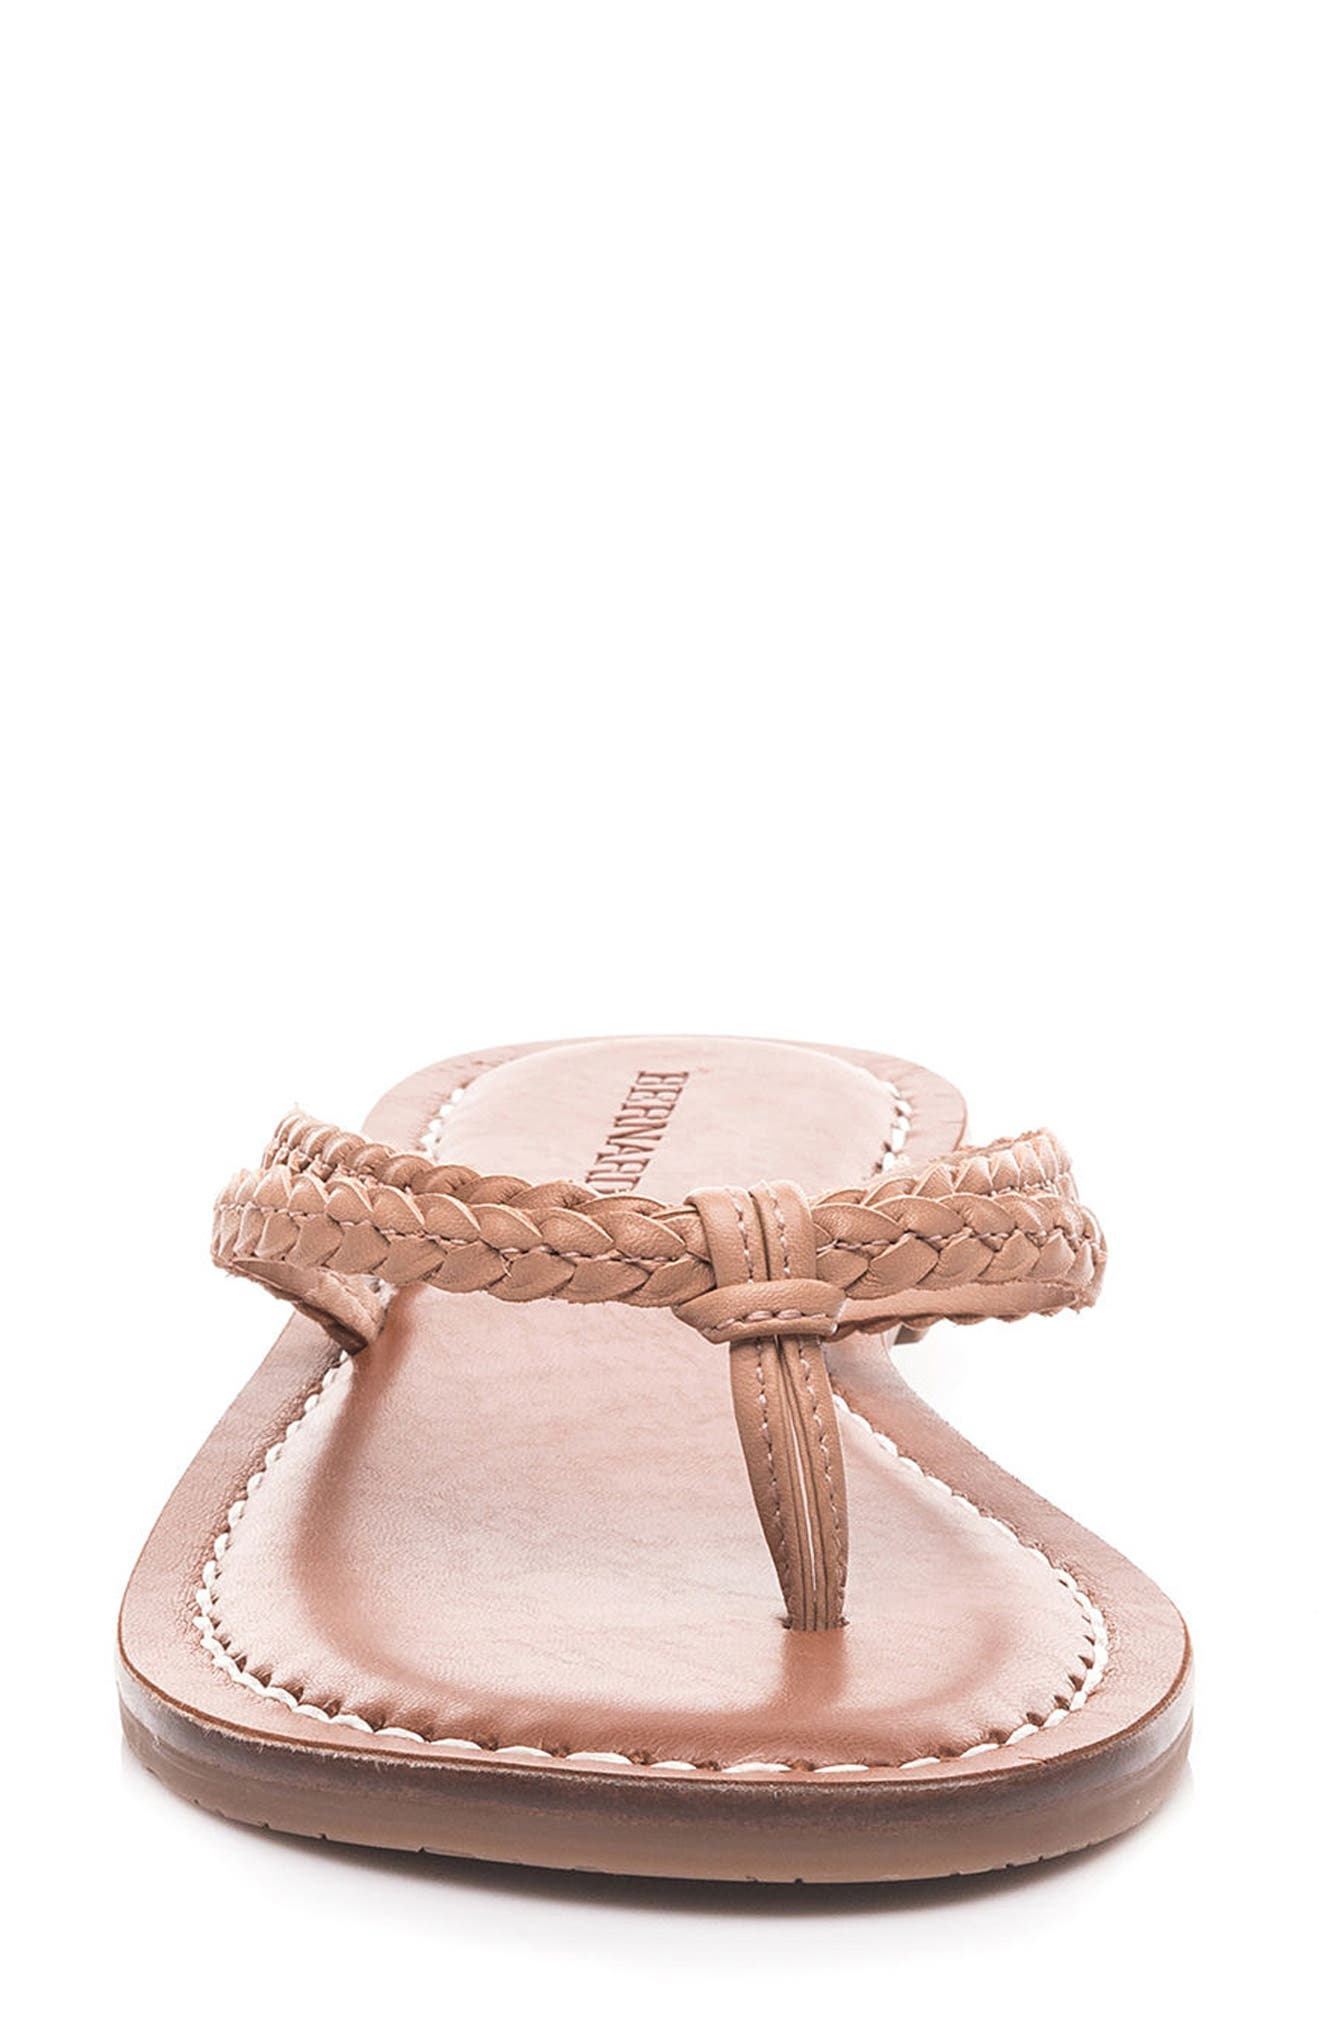 Bernardo Greta Braided Strap Sandal,                             Alternate thumbnail 26, color,